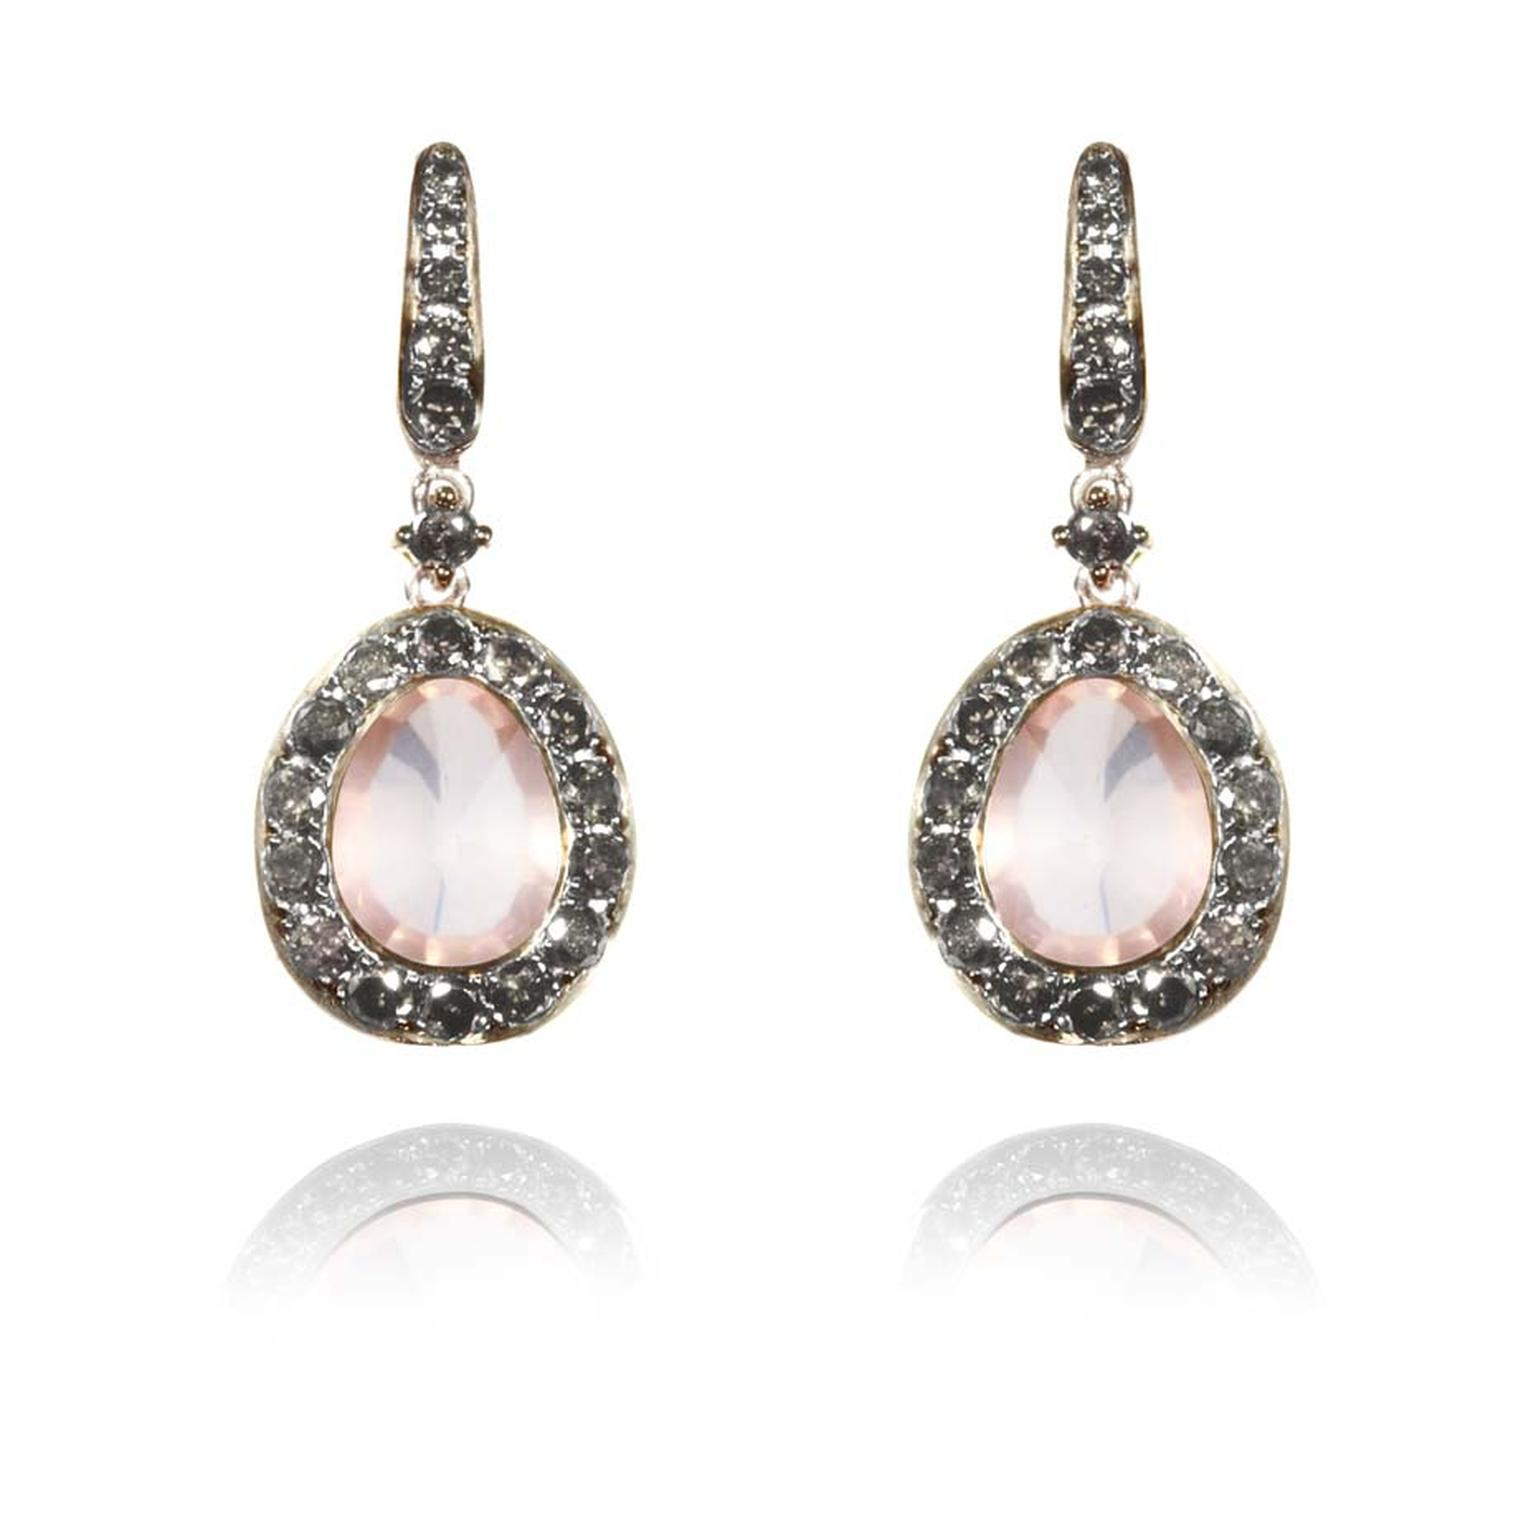 Annouska Dusty Diamonds white gold earrings with silver diamonds and centre rose quartz.